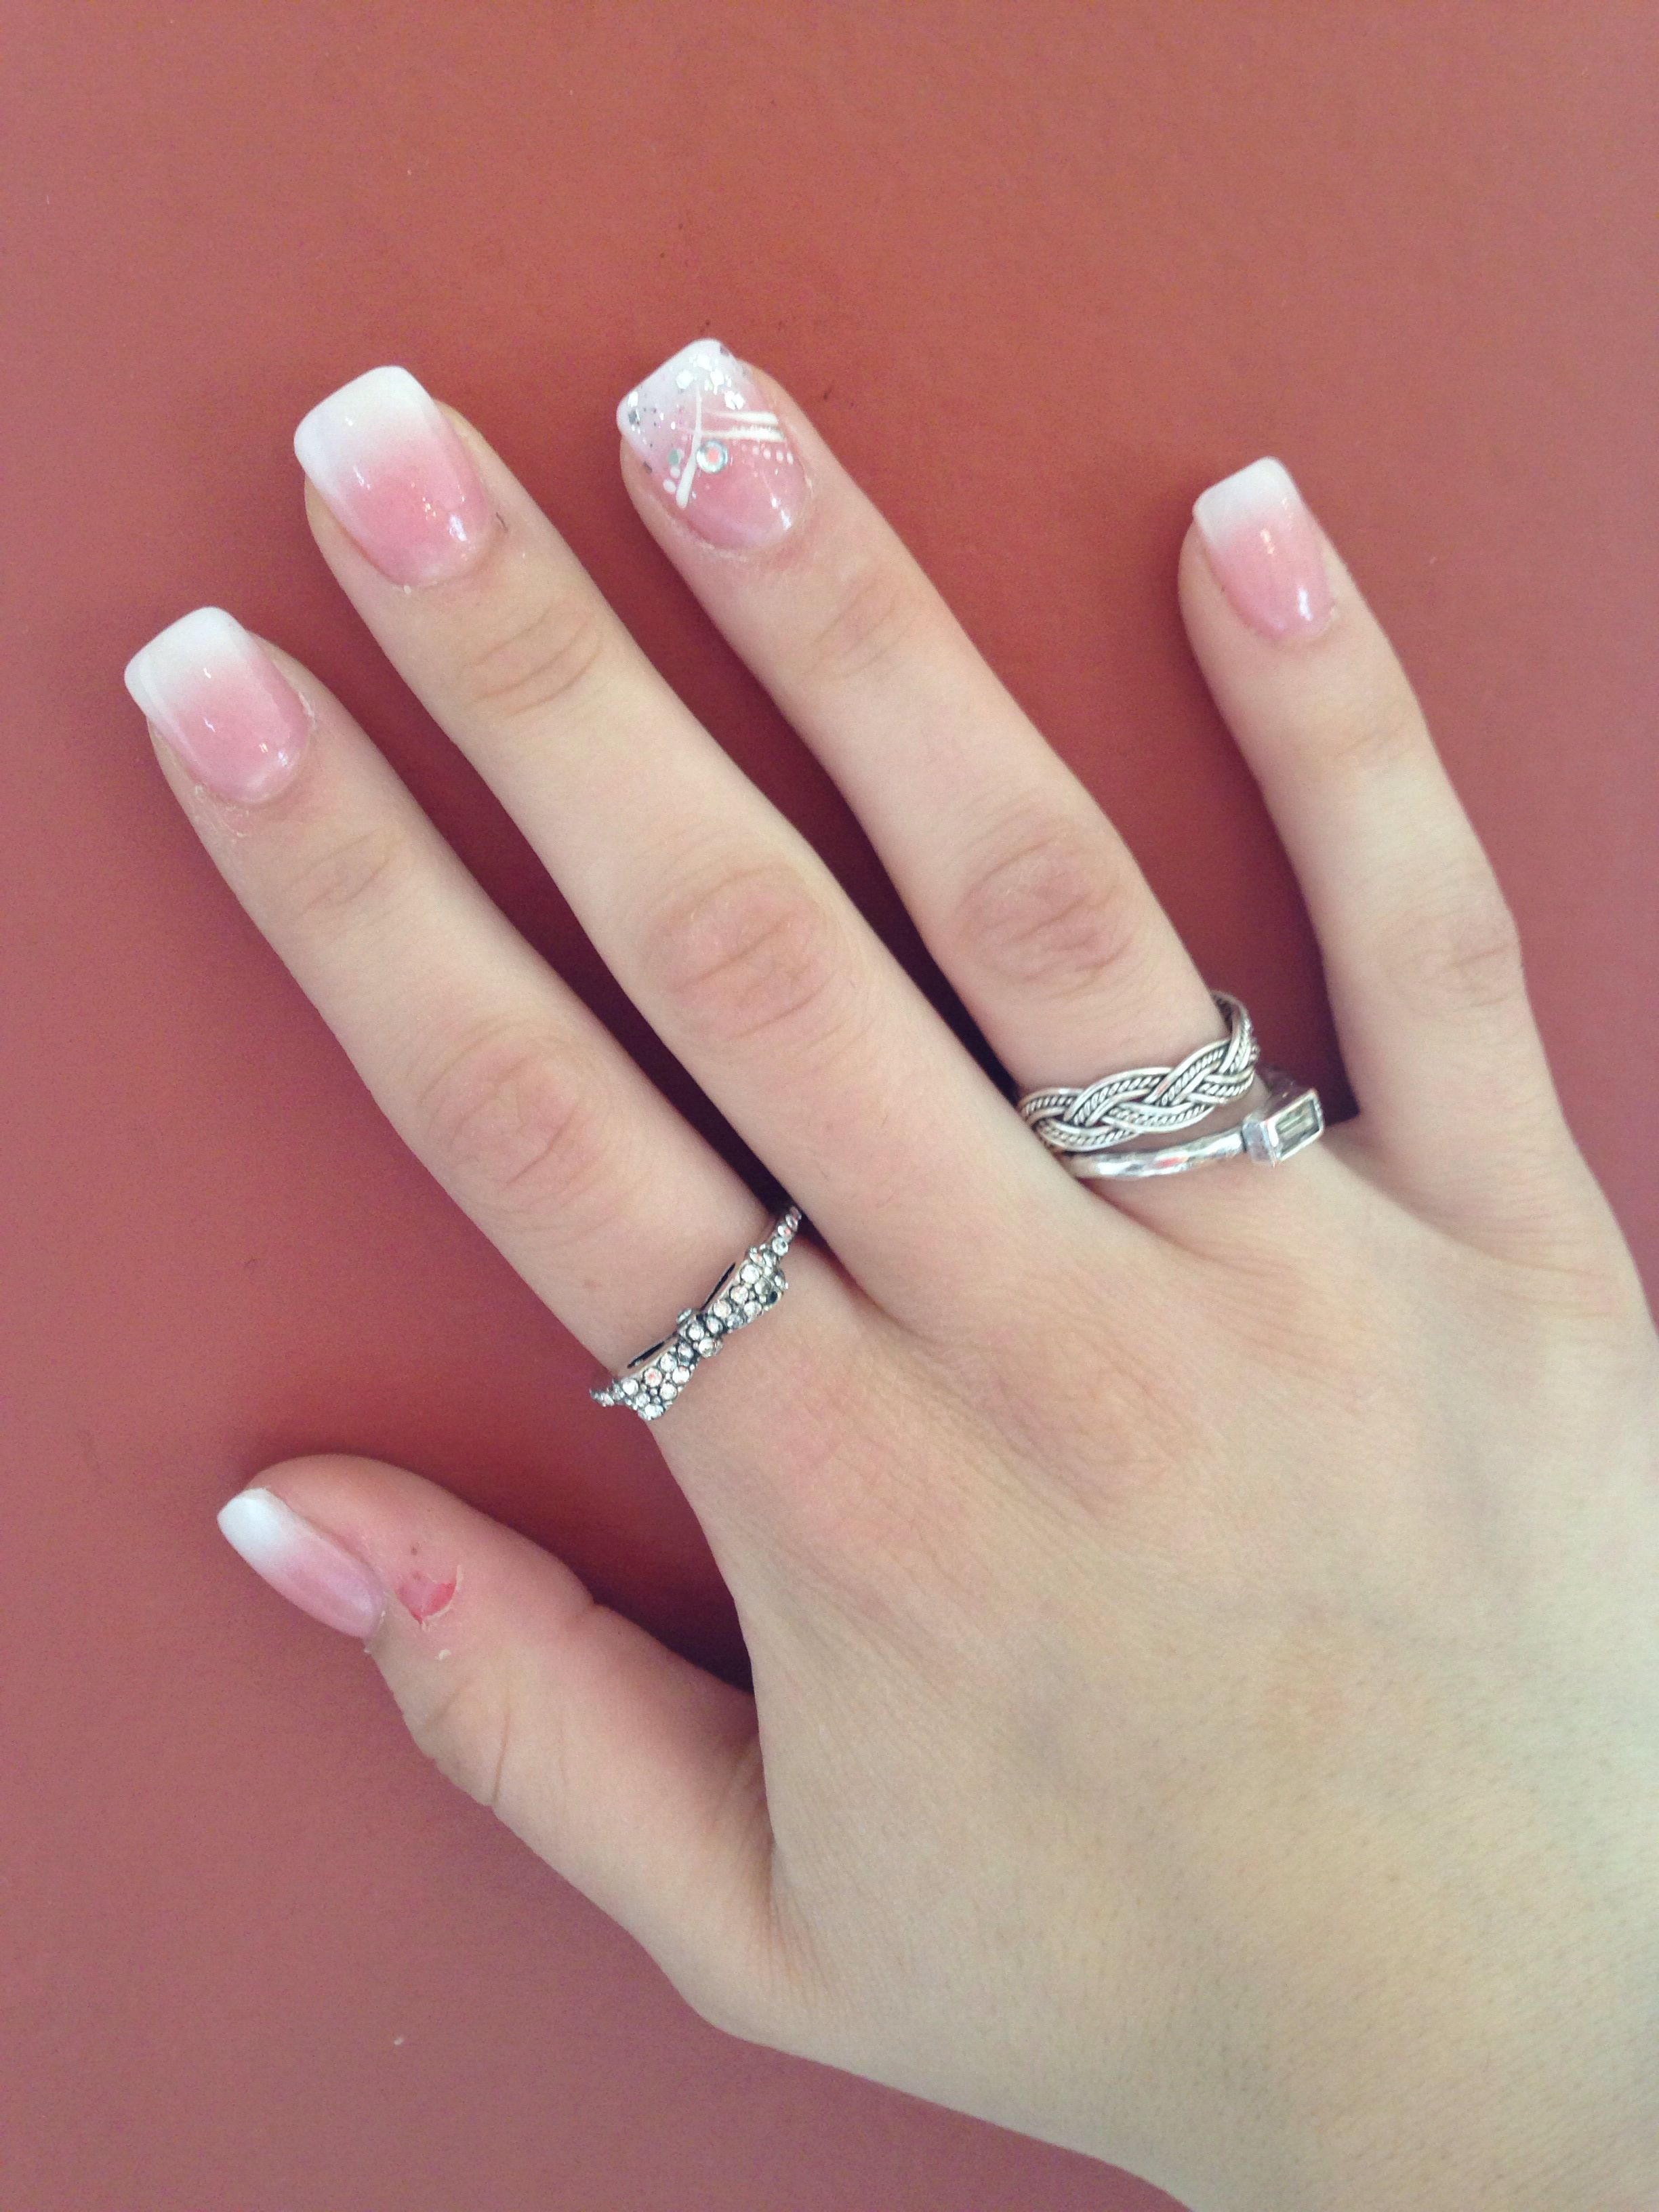 French Tip Nails: Full Set Acrylics. Ombre Faded French Manicure With